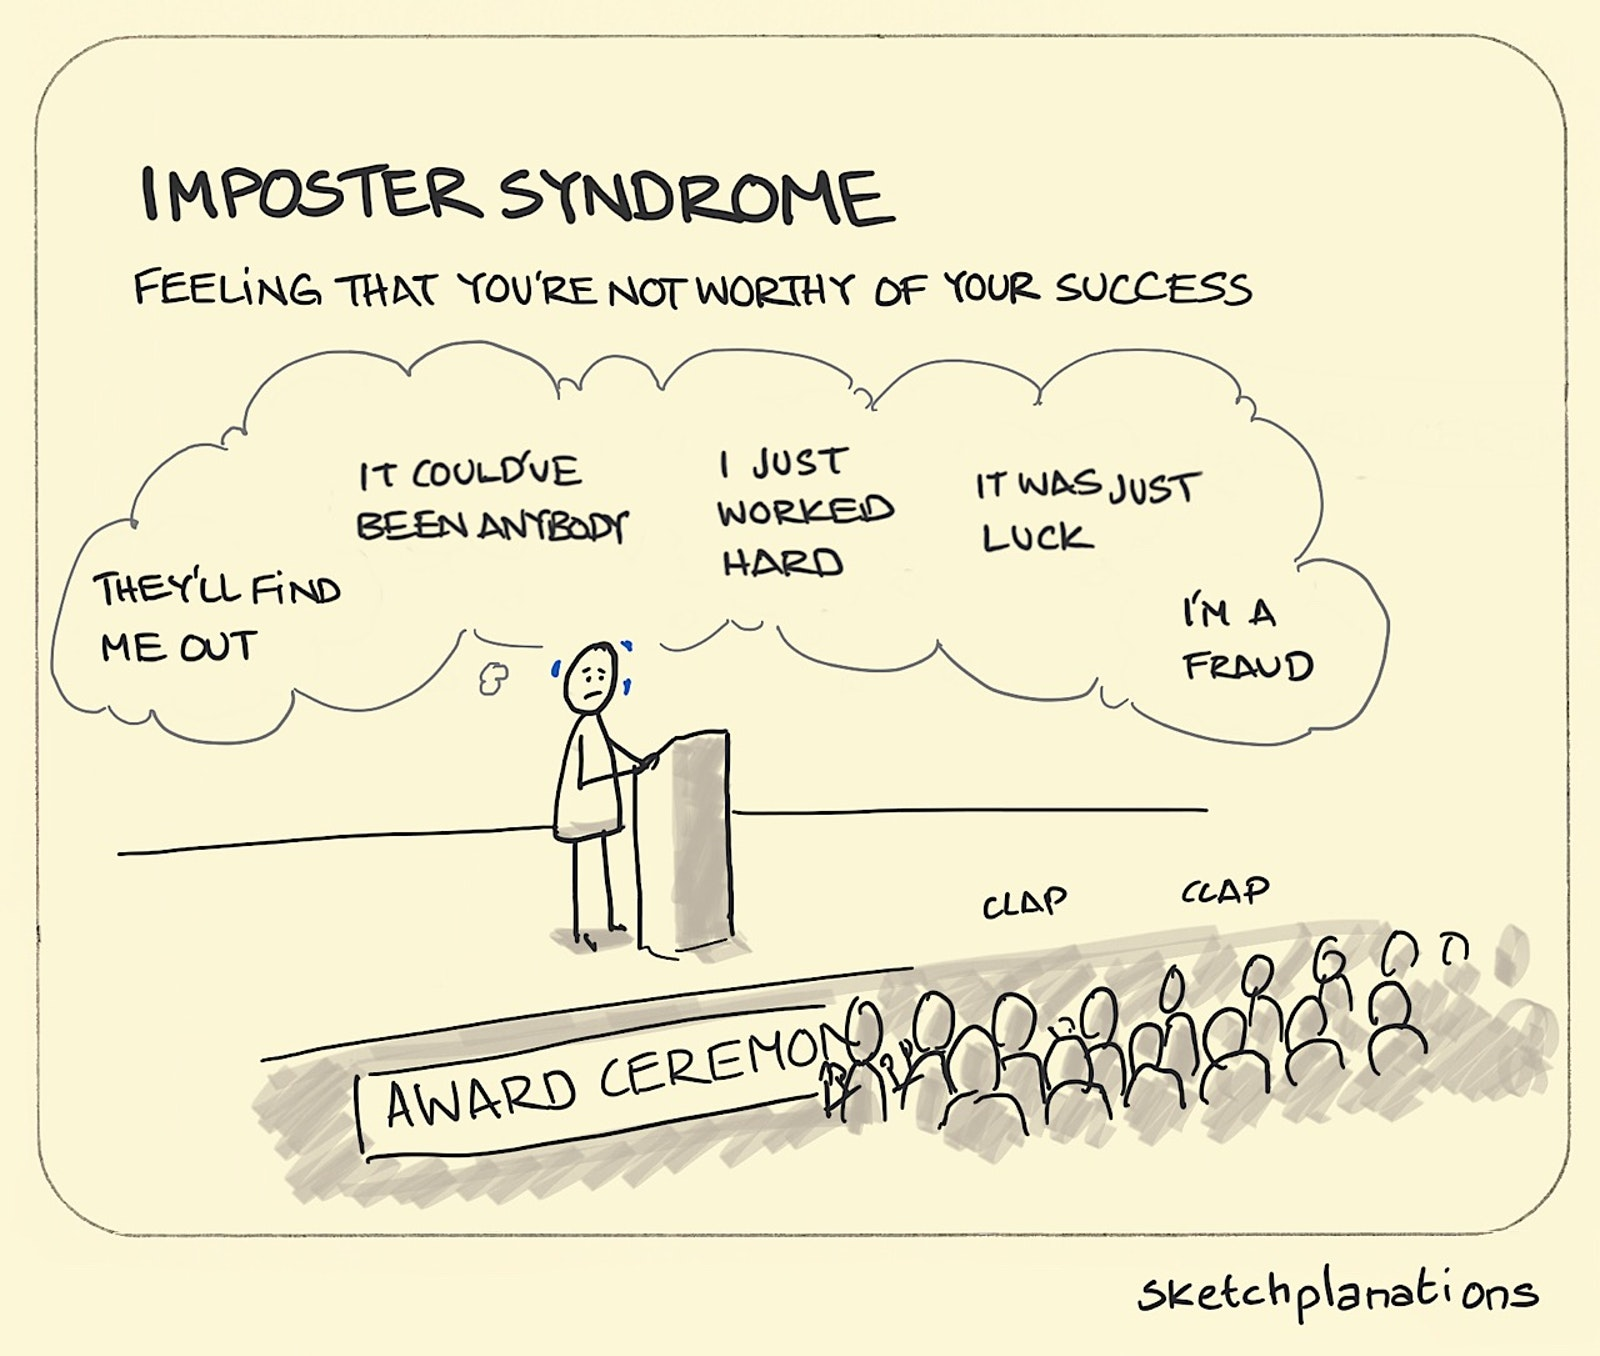 Imposter syndrome - Sketchplanations